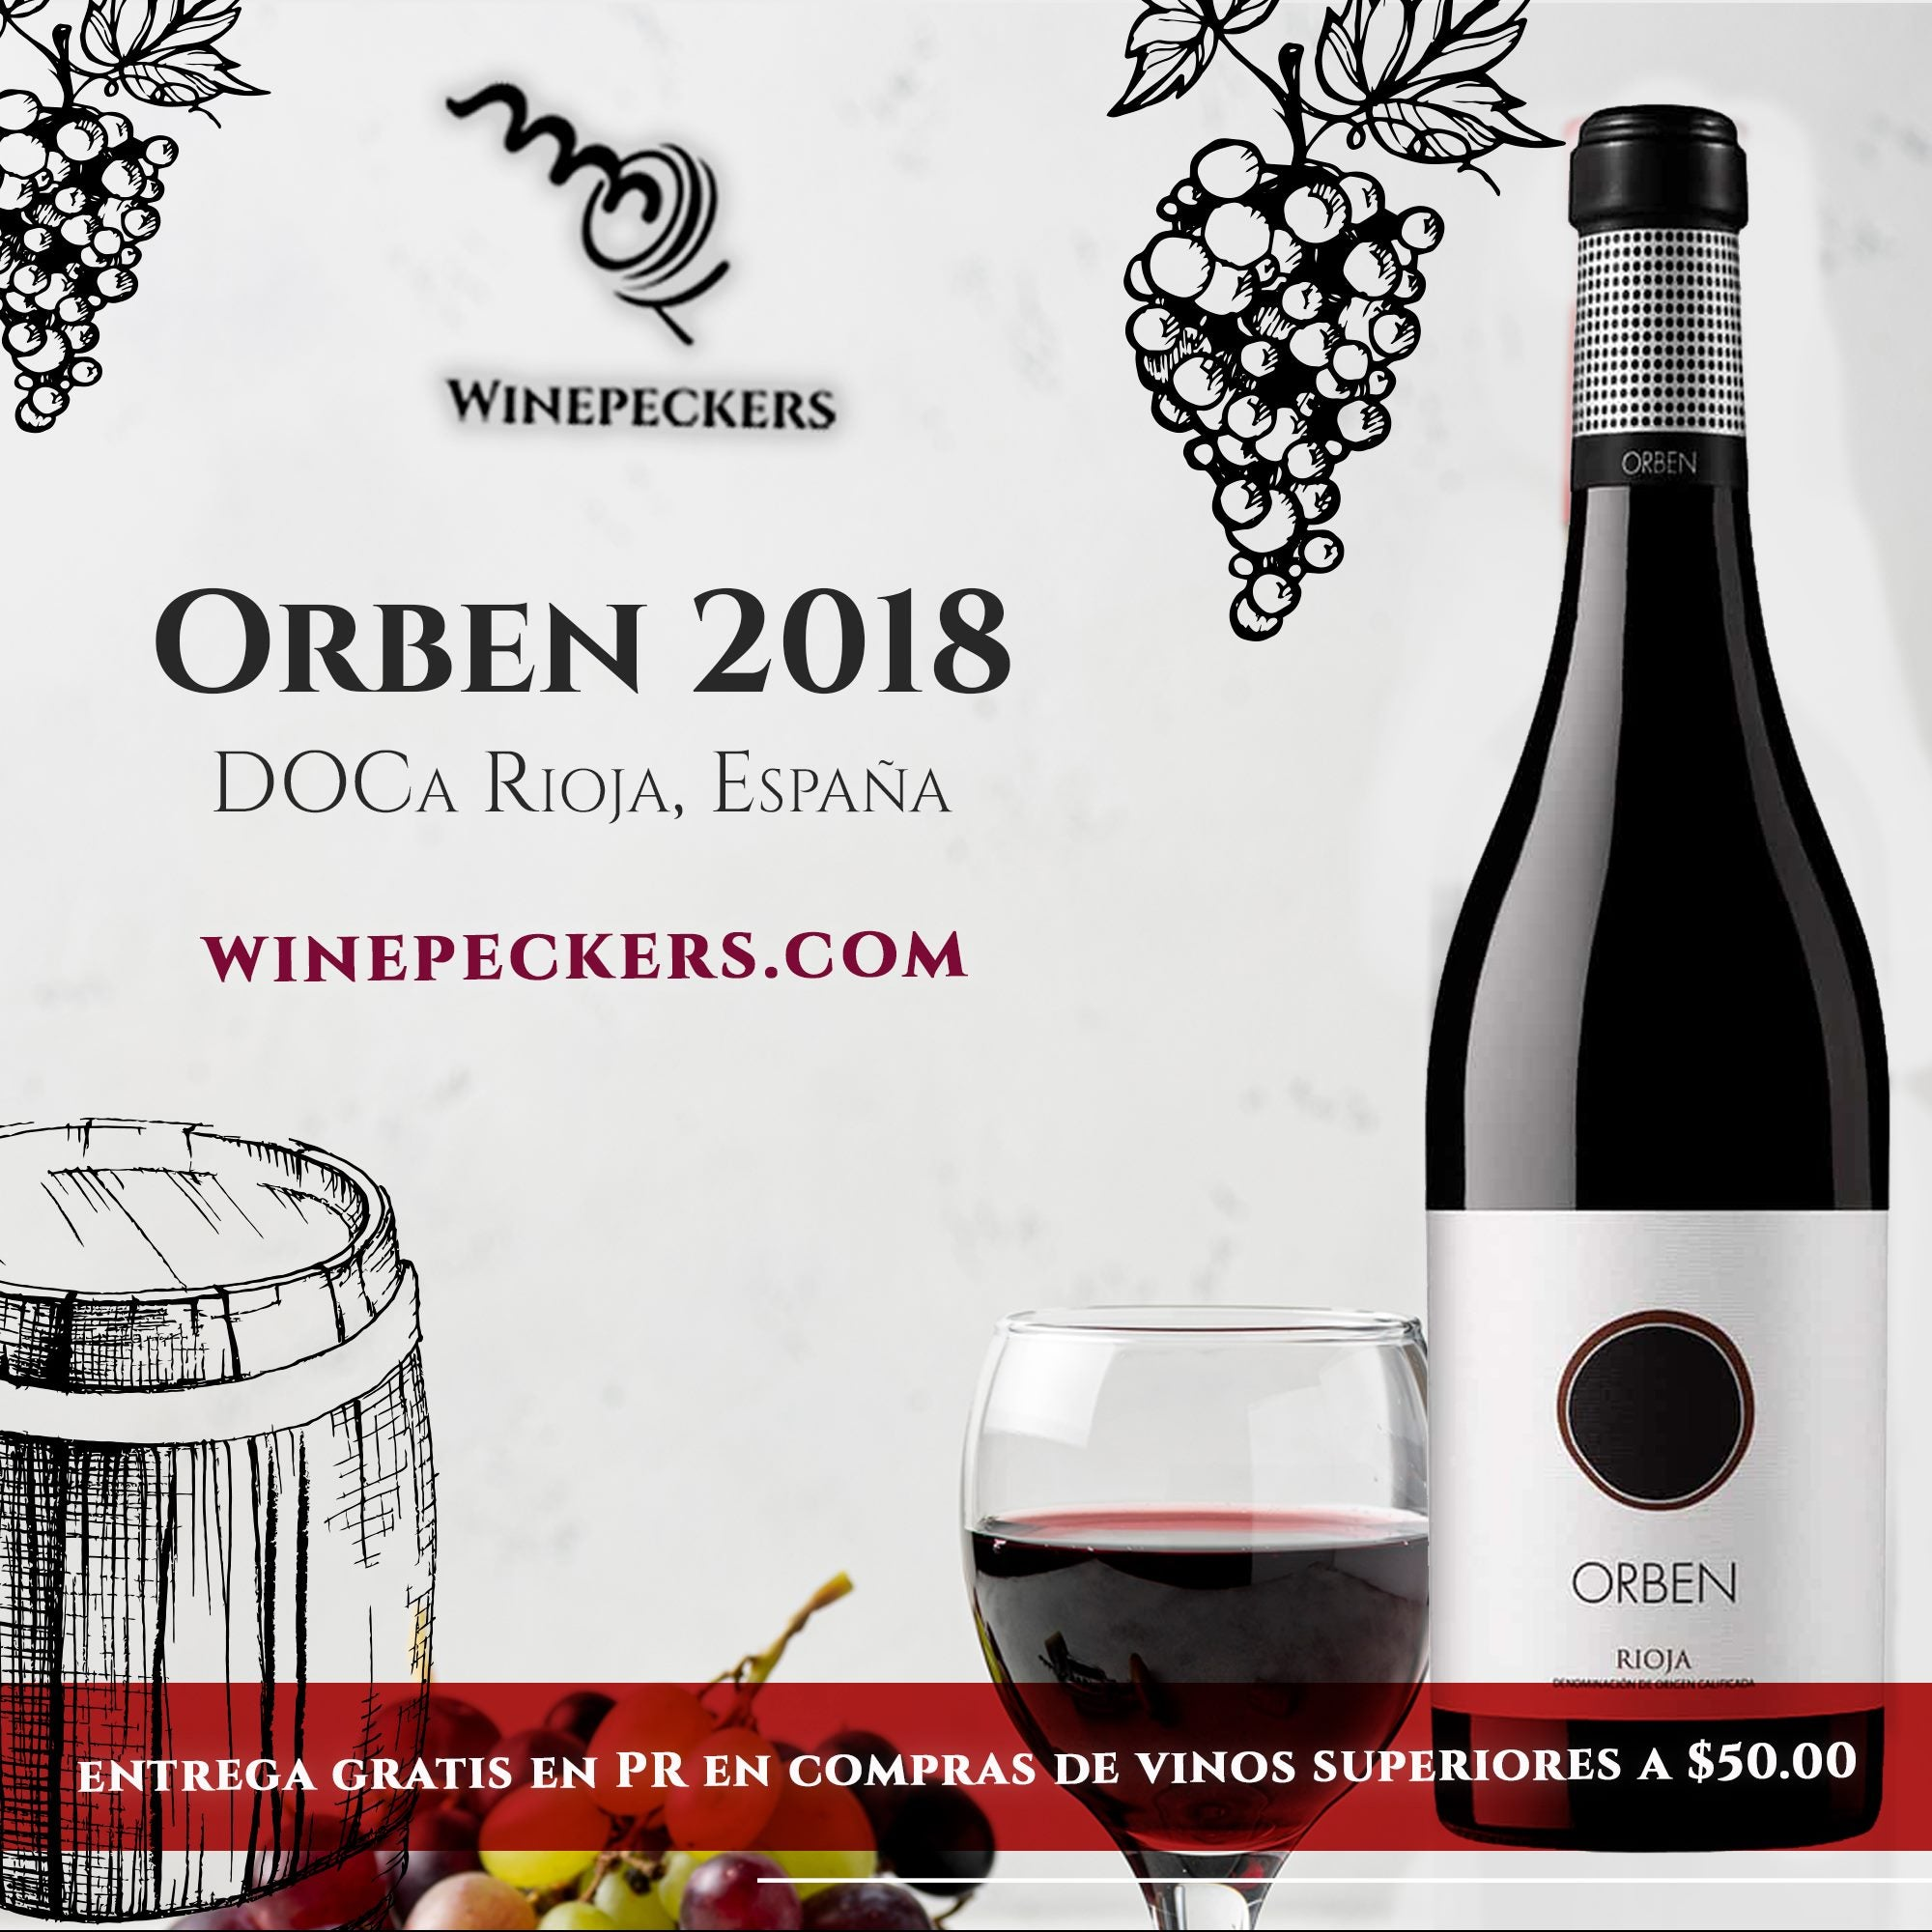 Orben / Rioja (91points WS)